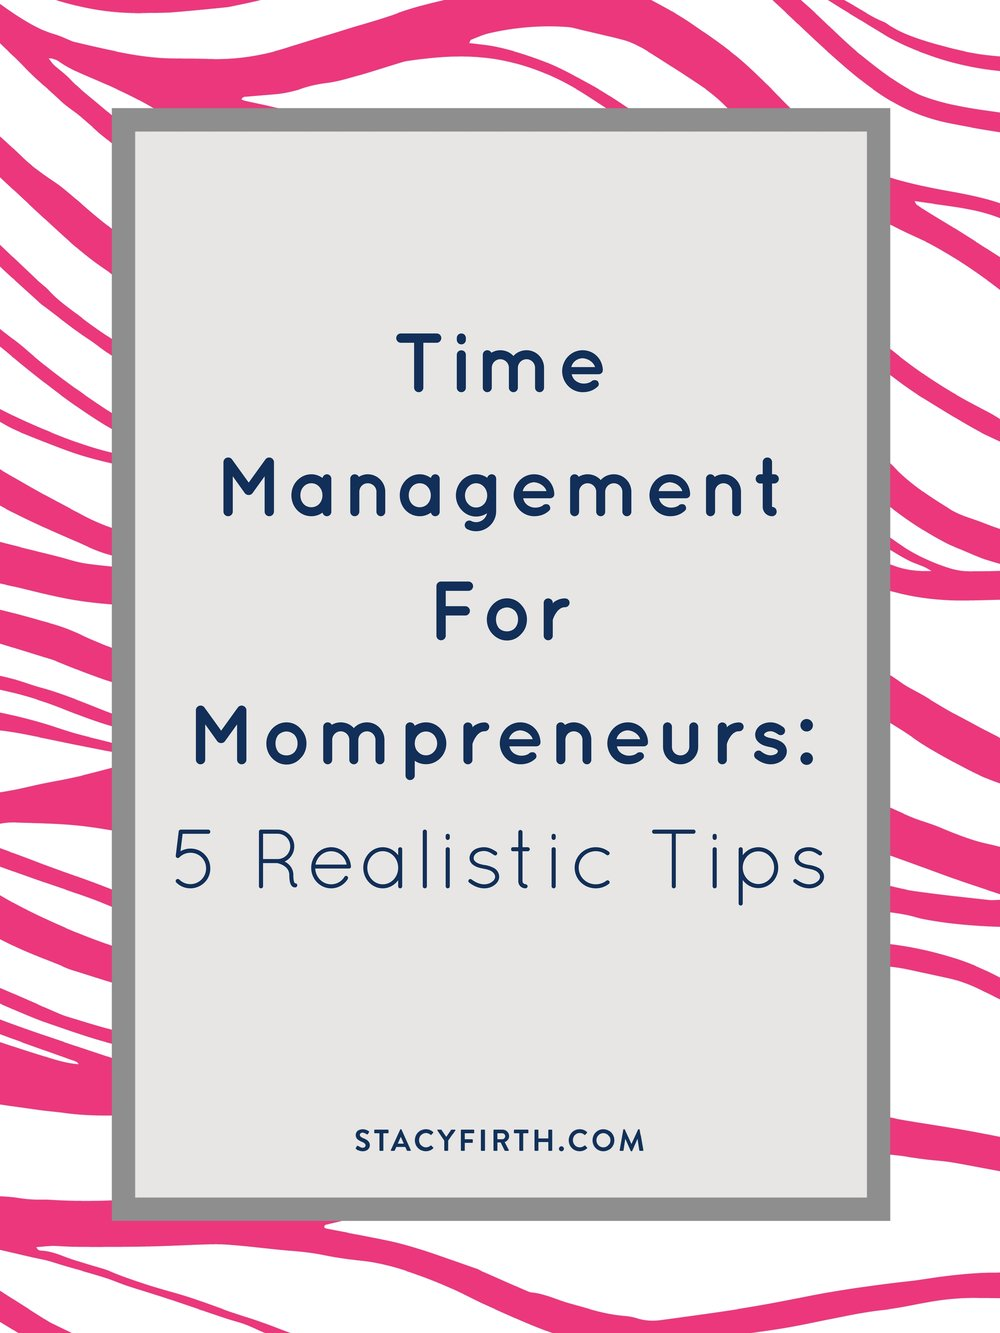 Time Management For Mompreneurs: 5 Realistic, Totally Doable Tip